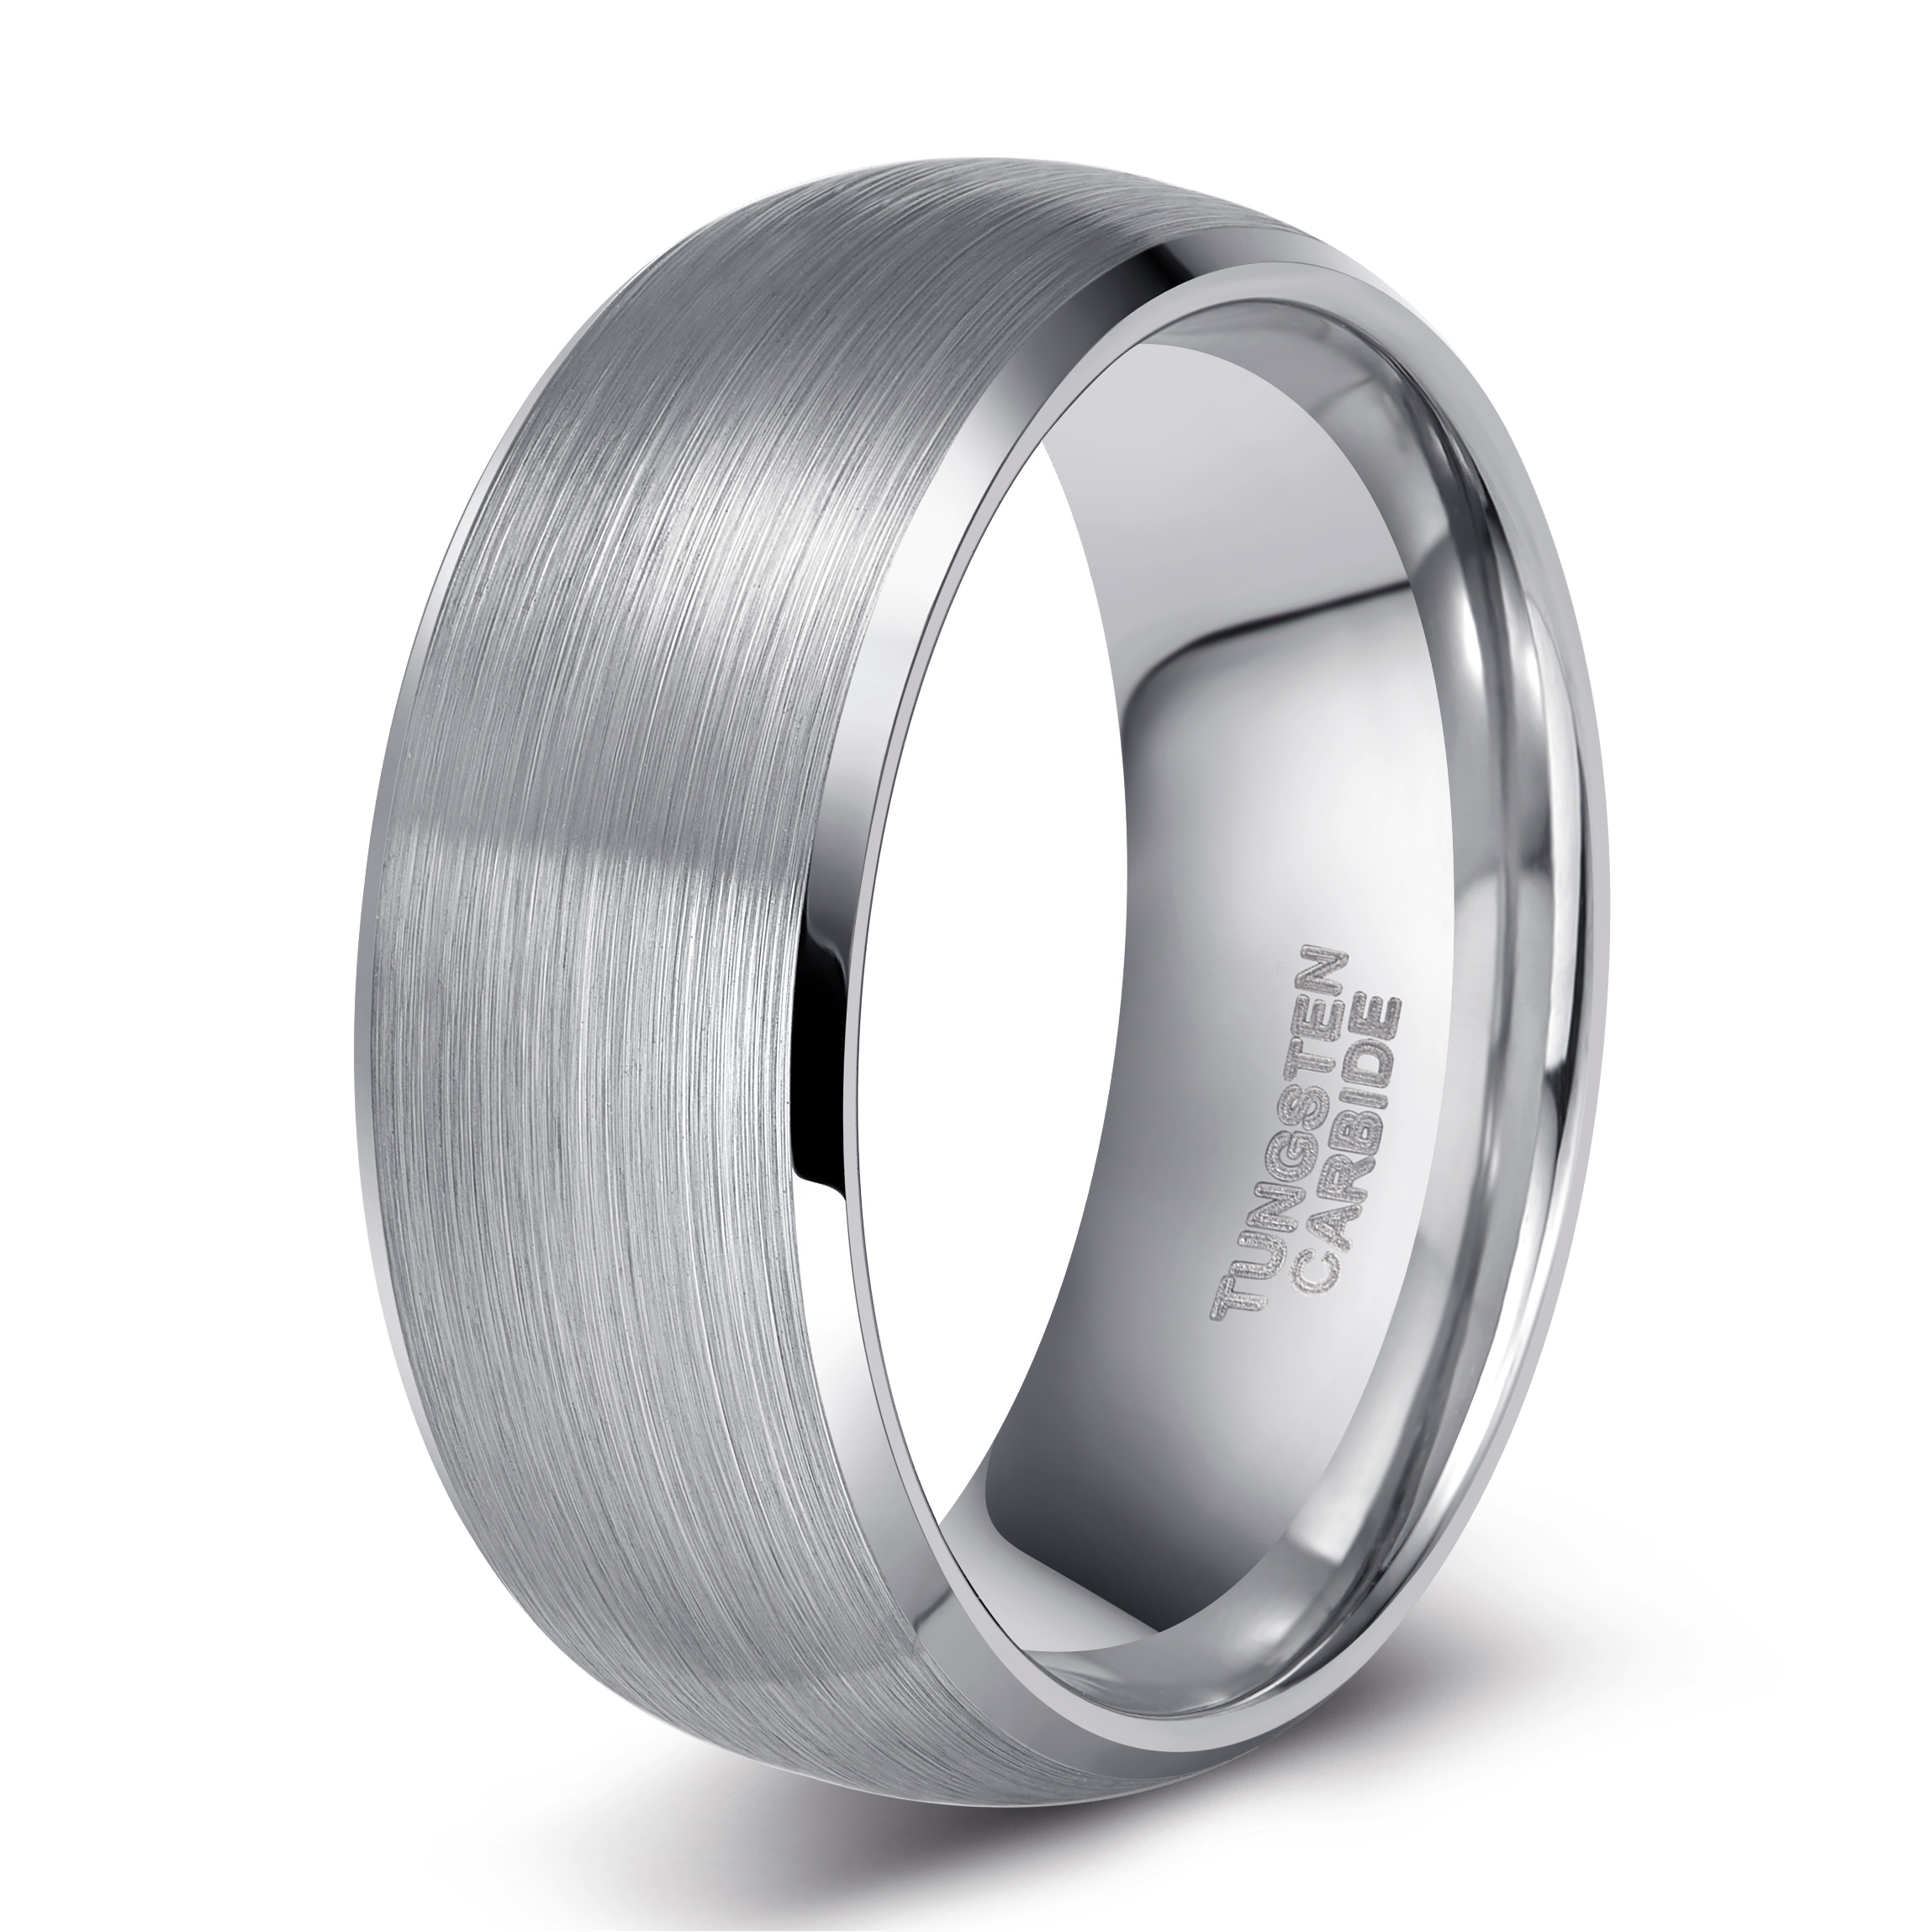 Titanium Brushed Diamond Cross Flat Wedding Band Ring Fine Jewelry Ideal Gifts For Women